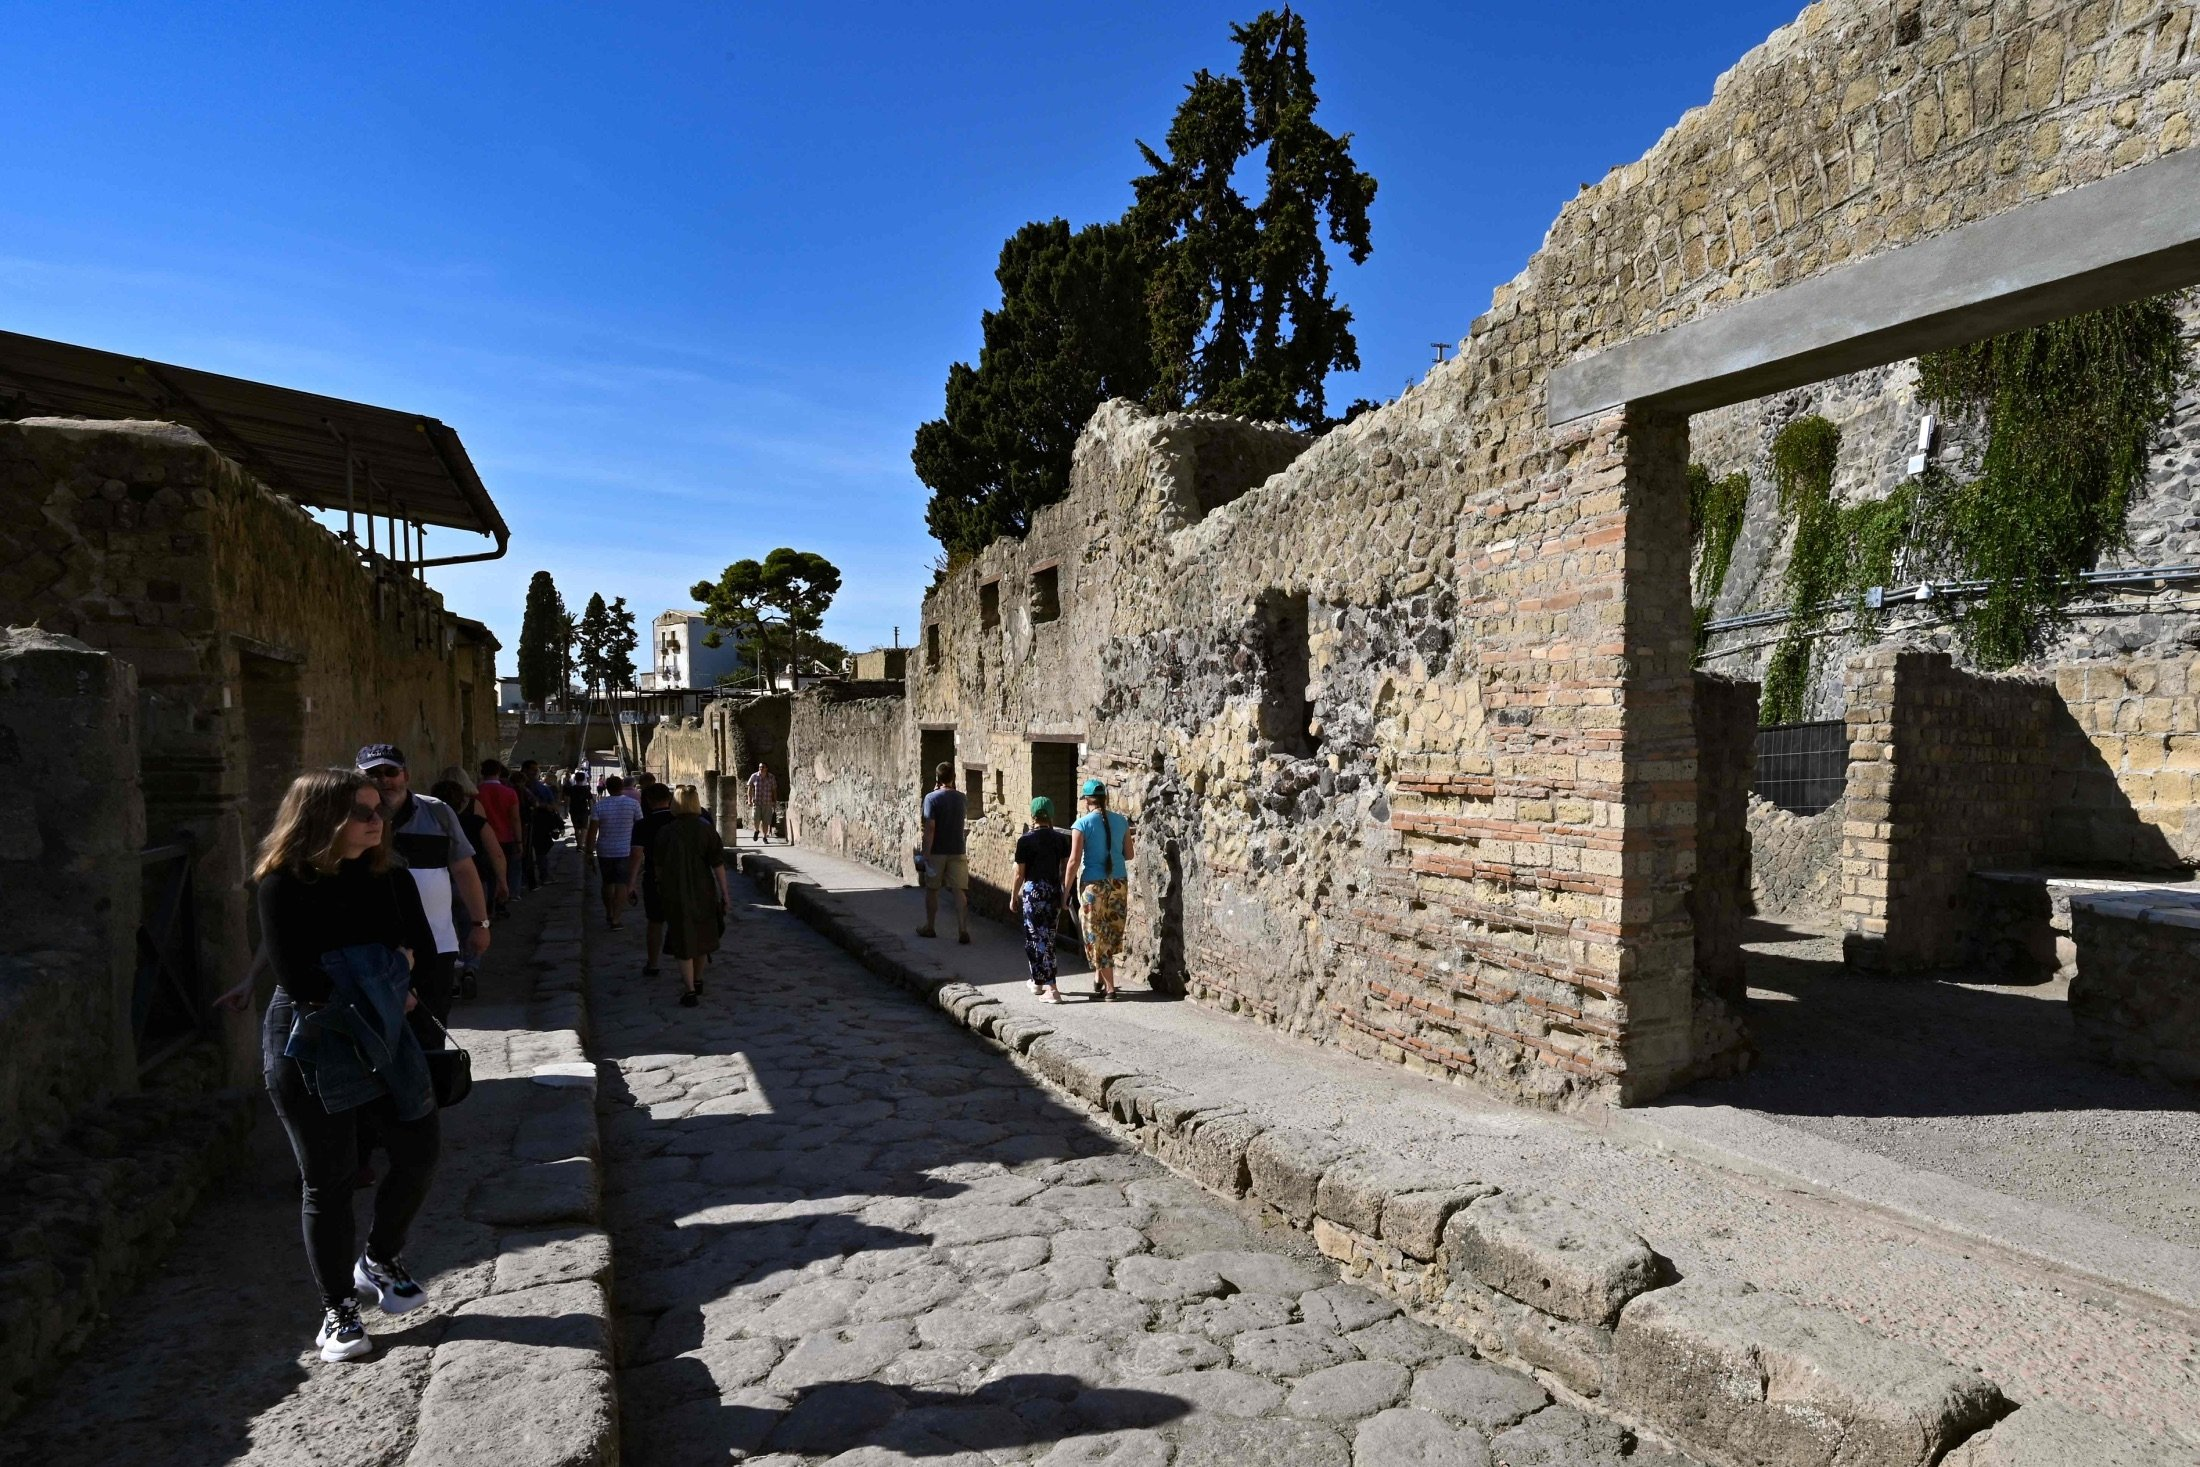 Visitors walk through the archaeological site of Herculaneum in Ercolano, near Naples, Italy, Oct. 23, 2019. (AFP Photo)